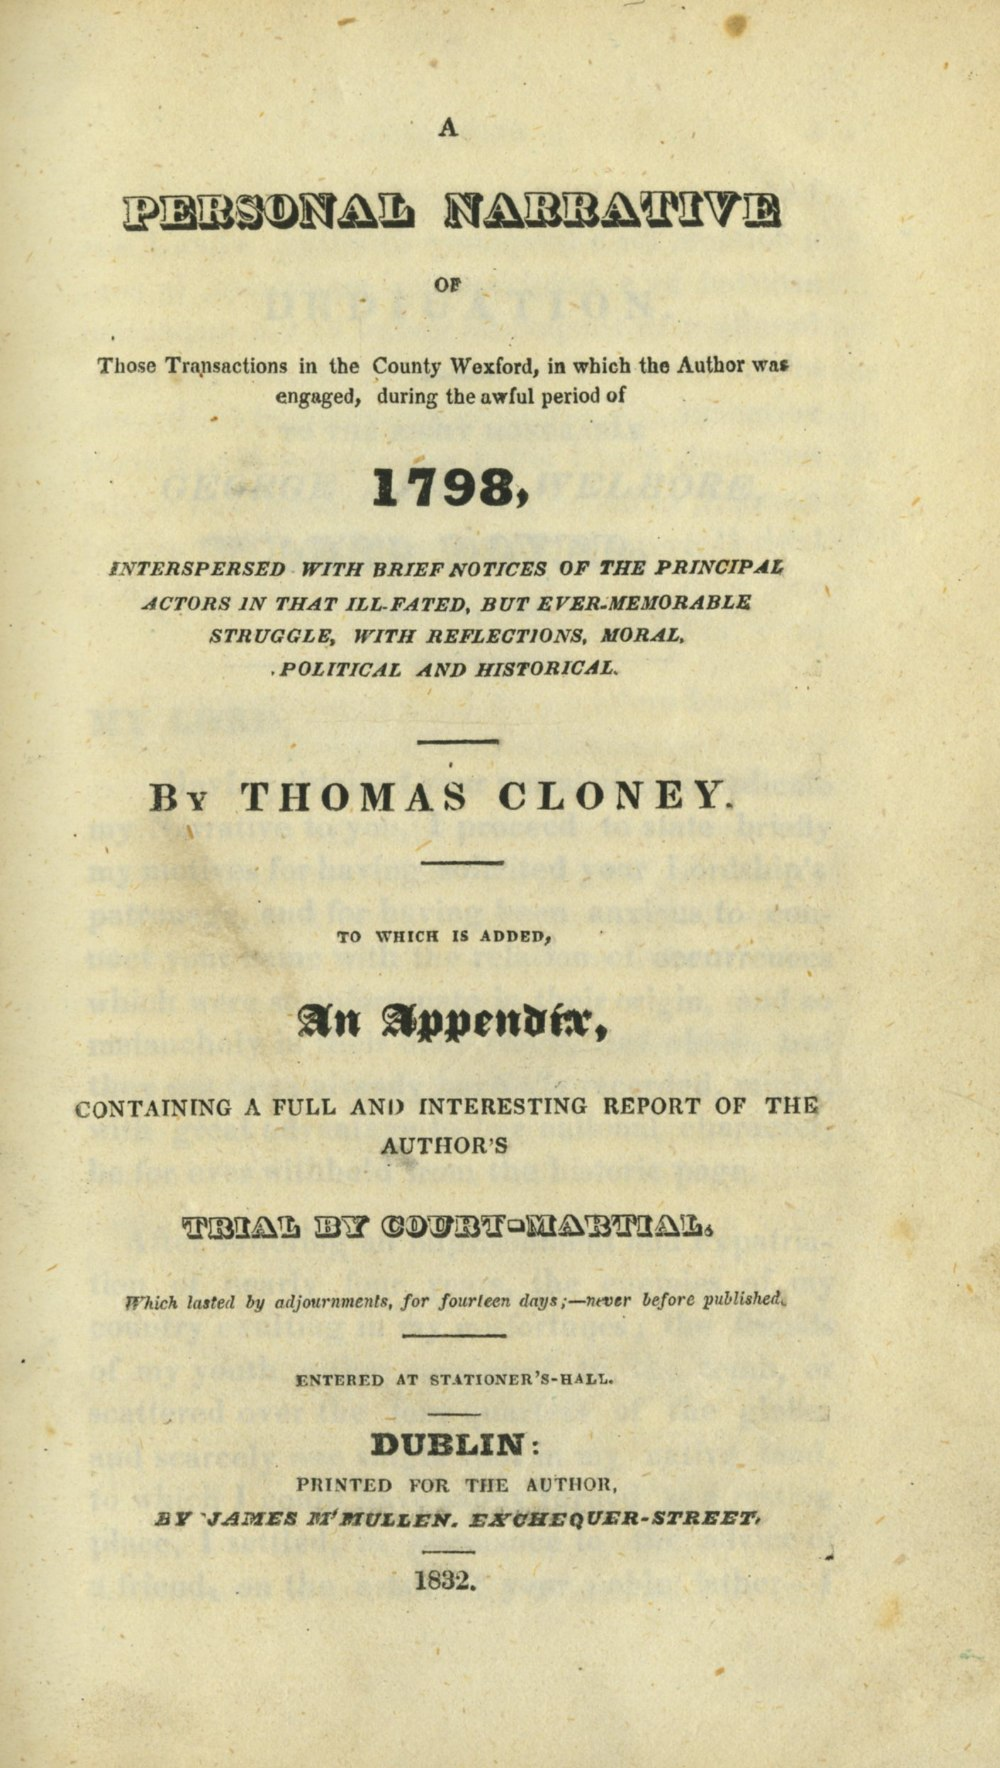 1798: Cloney (Thomas) A Personal Narrative of ... 1798, 8vo D. (James M'Mullen) 1832, First Edn.